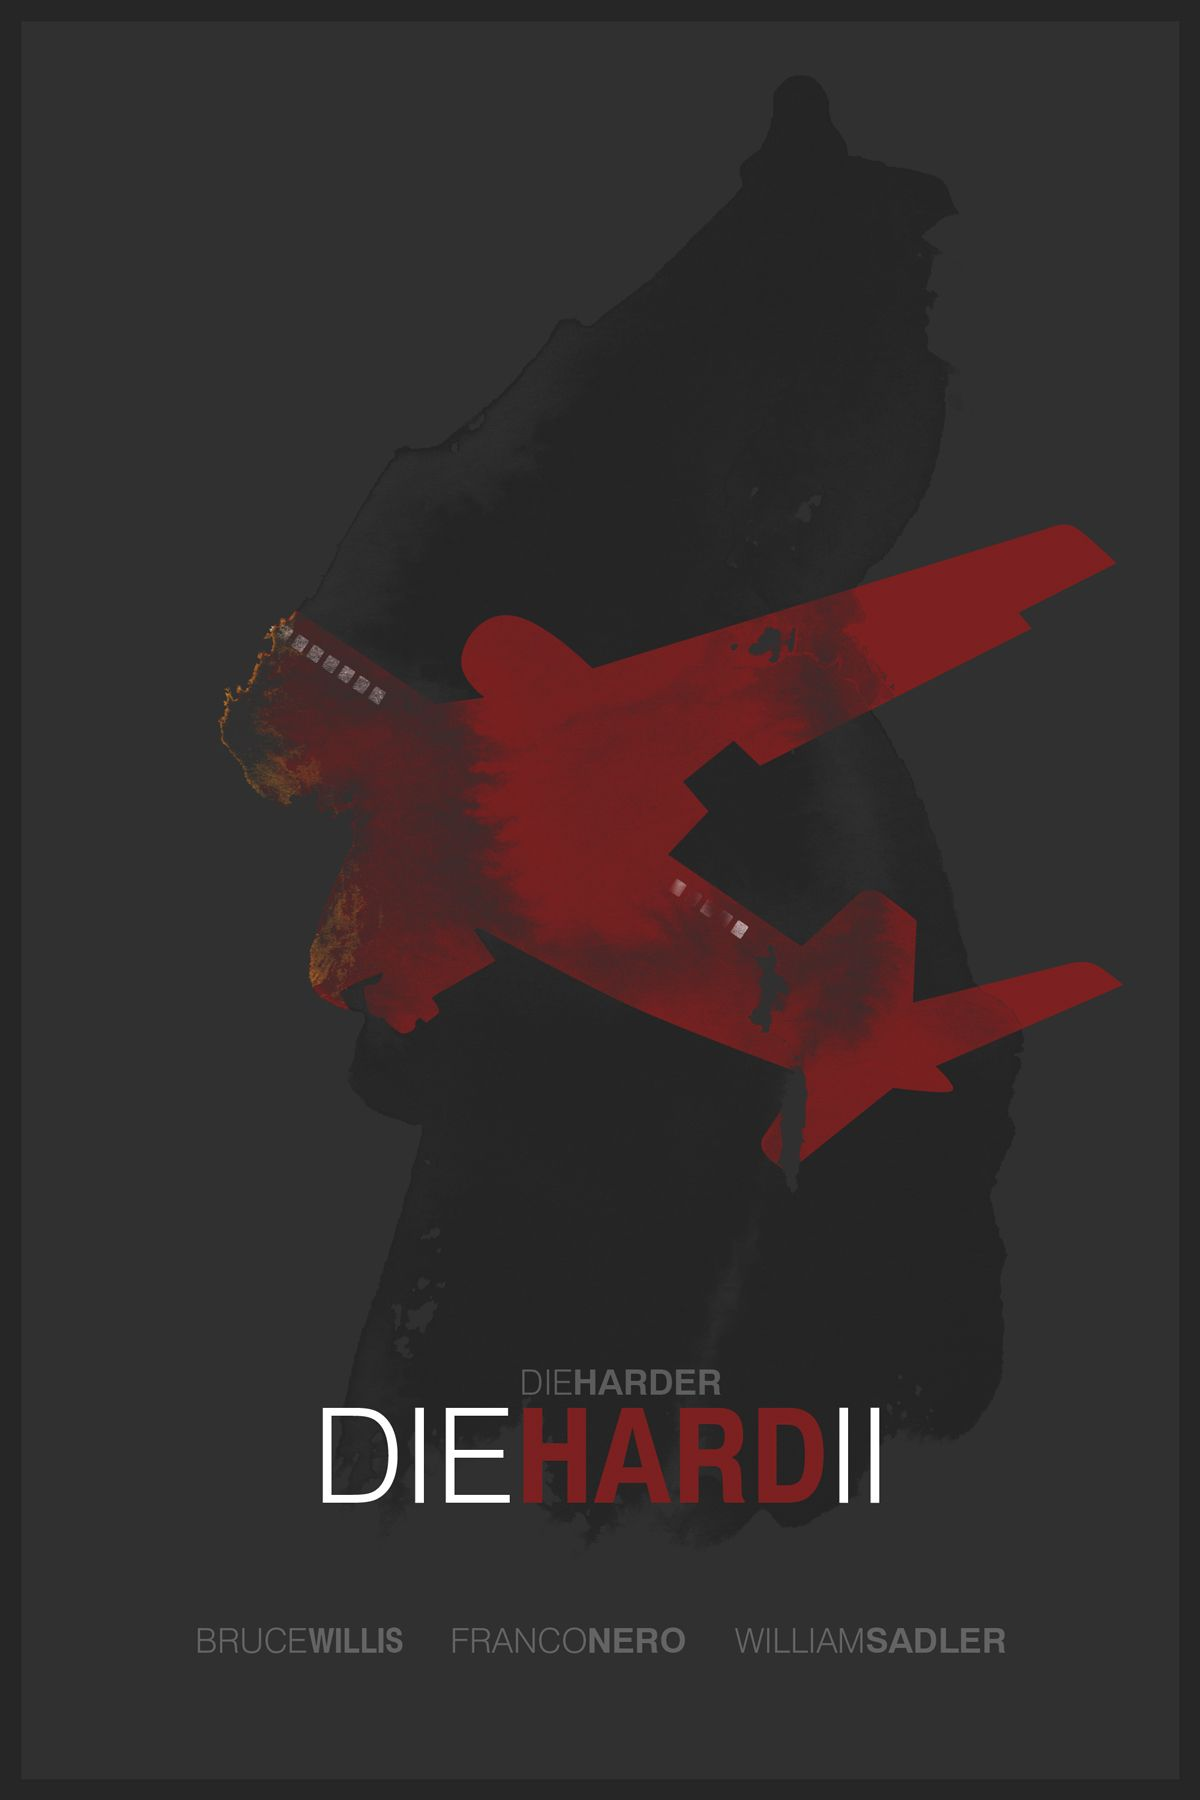 Die Hard 2 (Die Harder) | Data|Film | Movie posters, Film ...